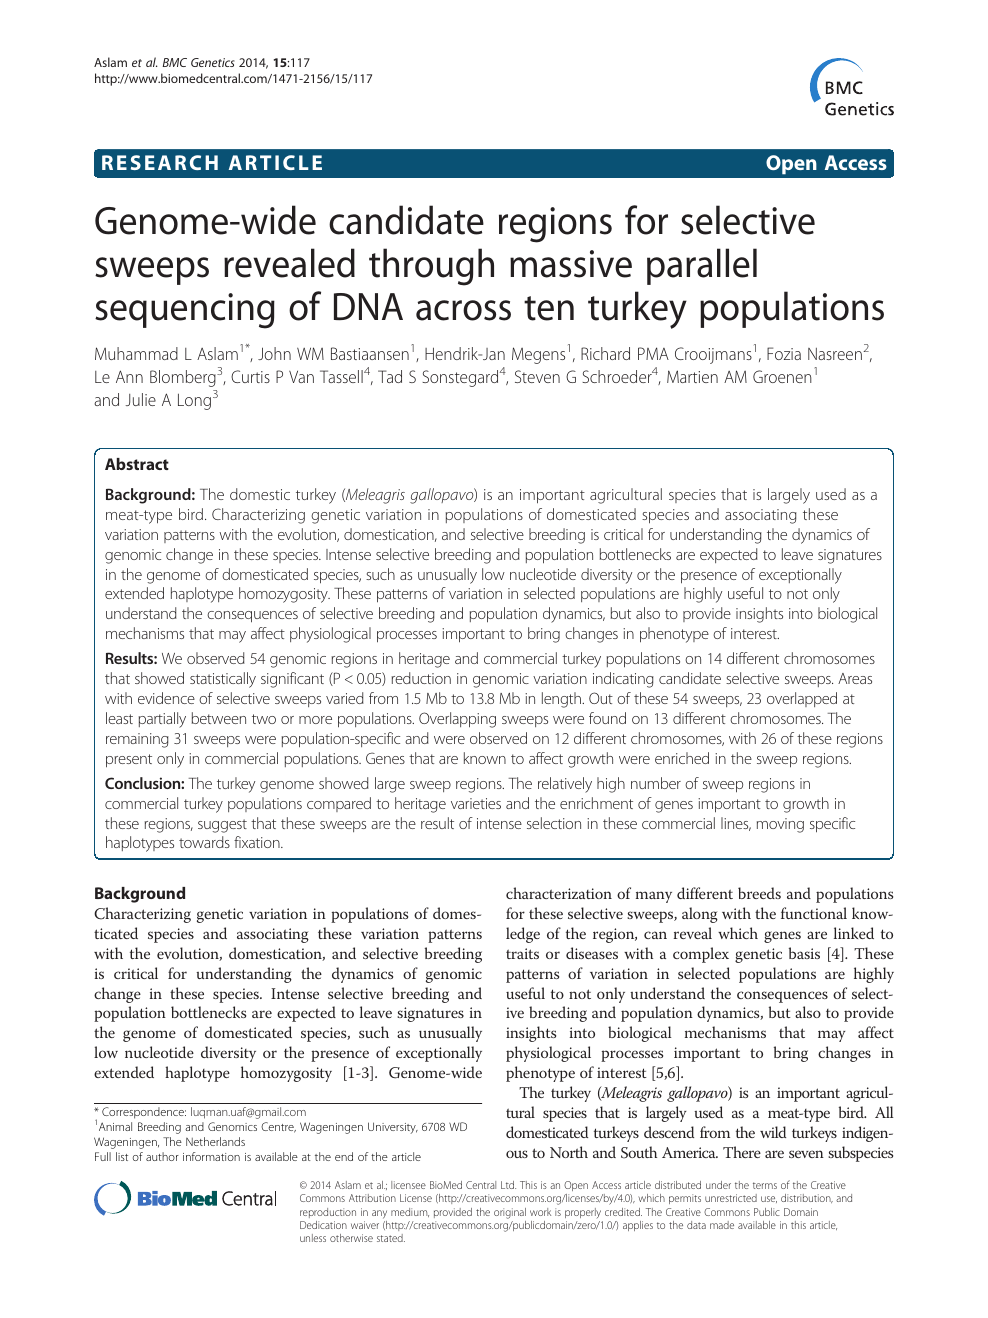 Genome-wide candidate regions for selective sweeps revealed